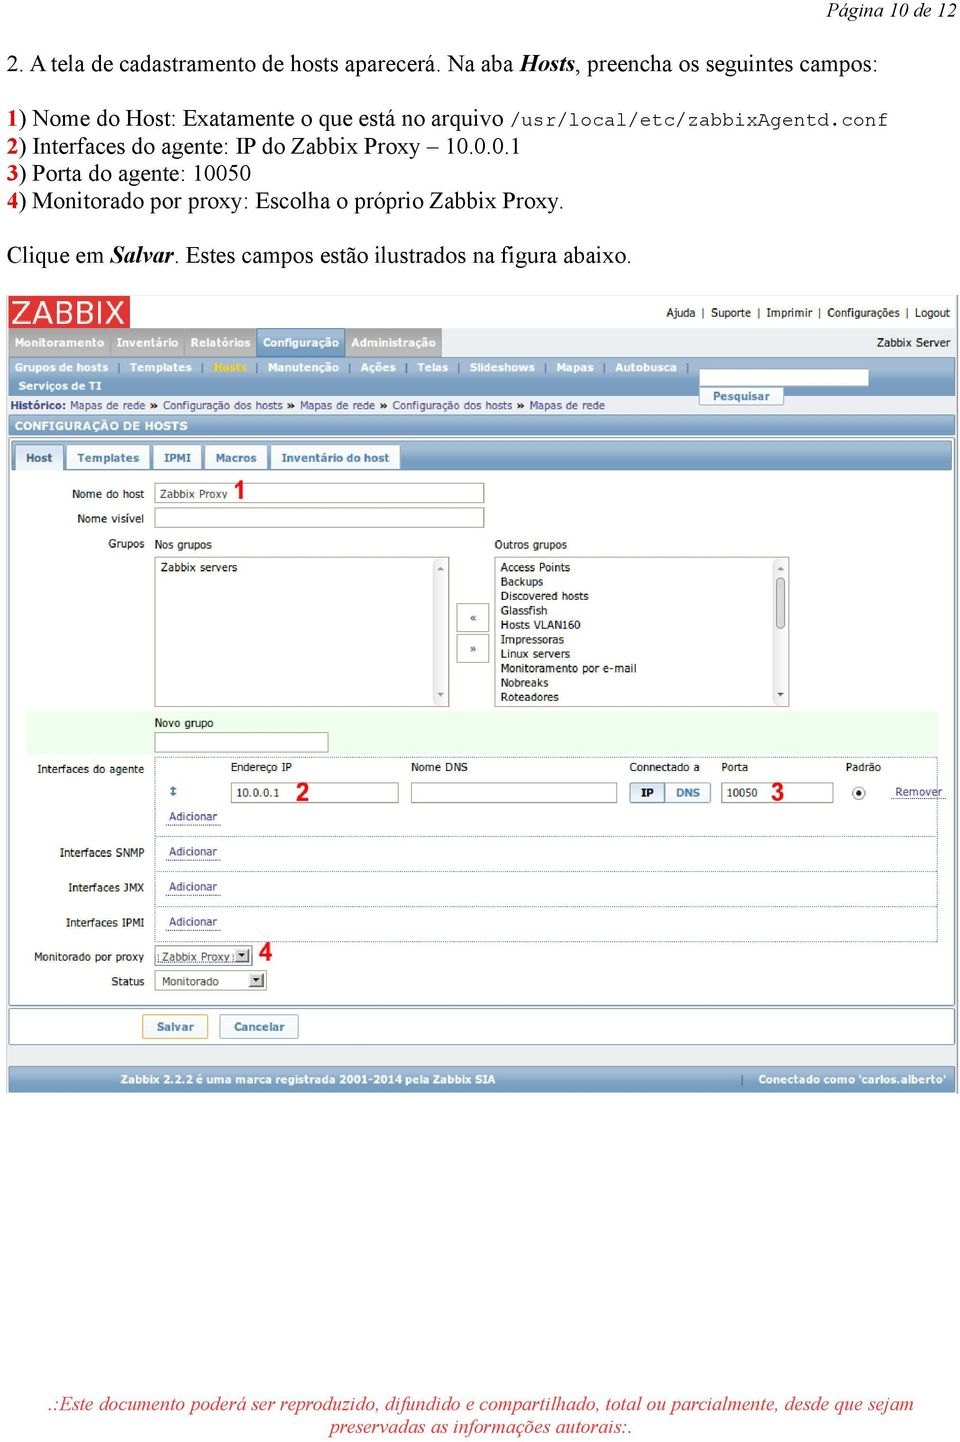 /usr/local/etc/zabbixagentd.conf 2) Interfaces do agente: IP do Zabbix Proxy 10.